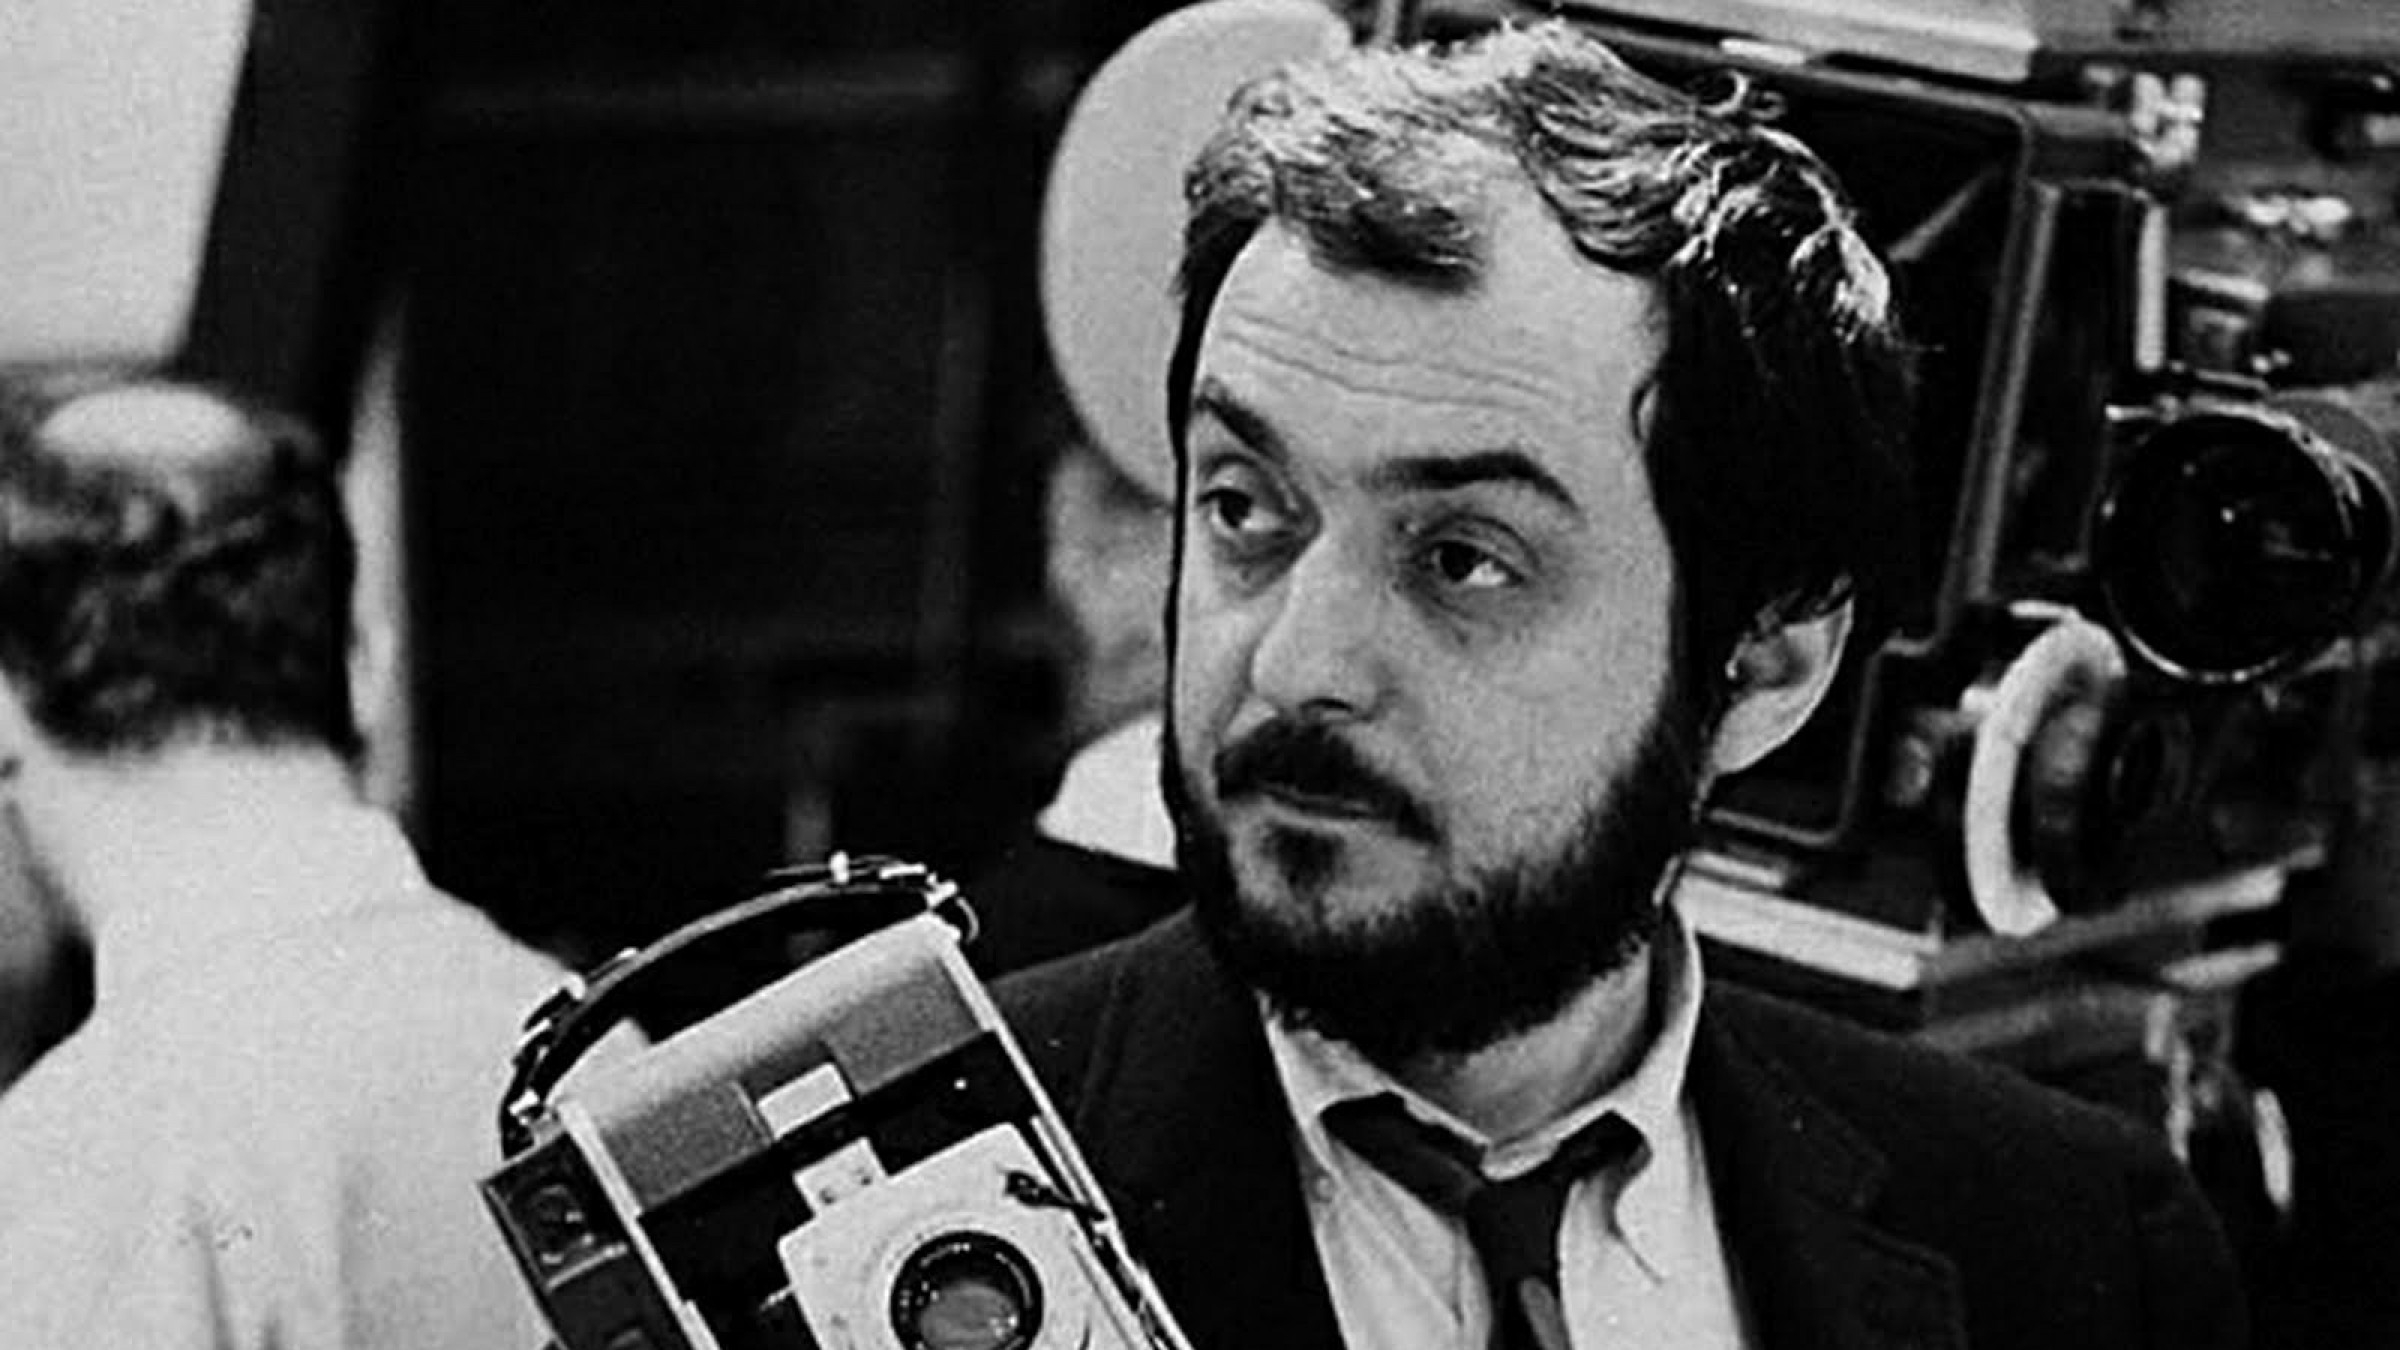 Movies by Stanley Kubrick